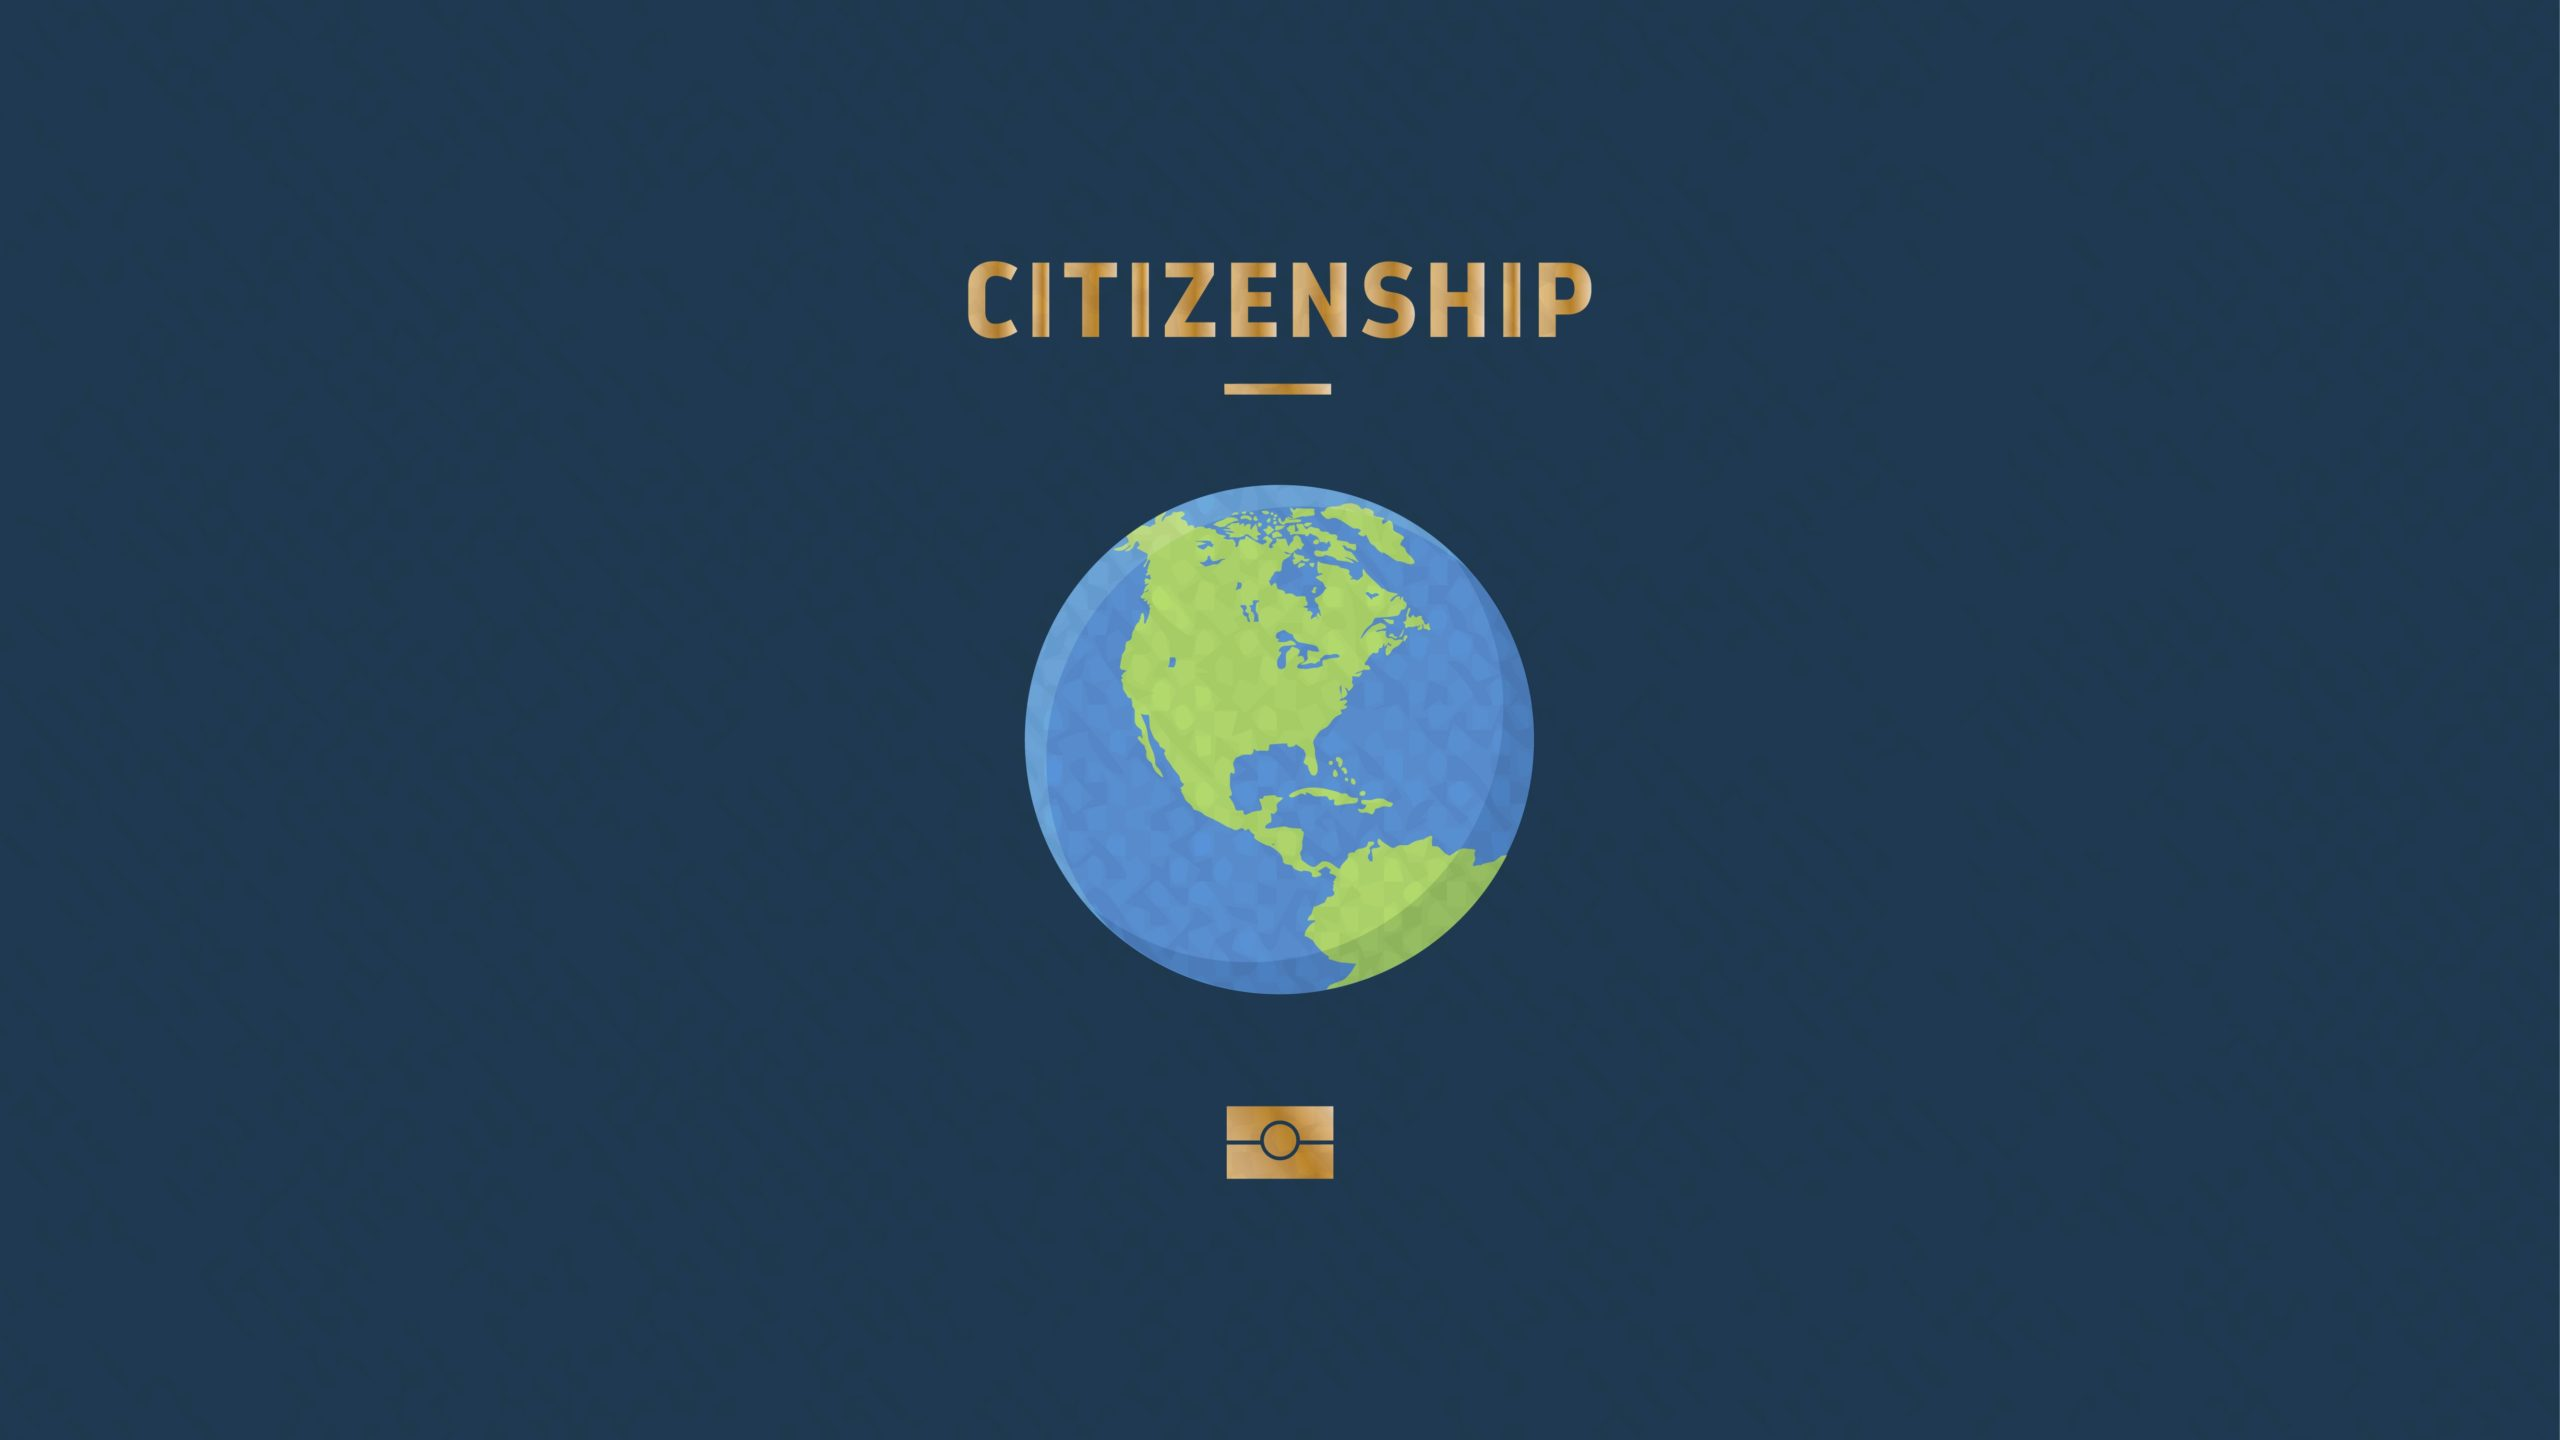 How can we achieve a world citizenship?